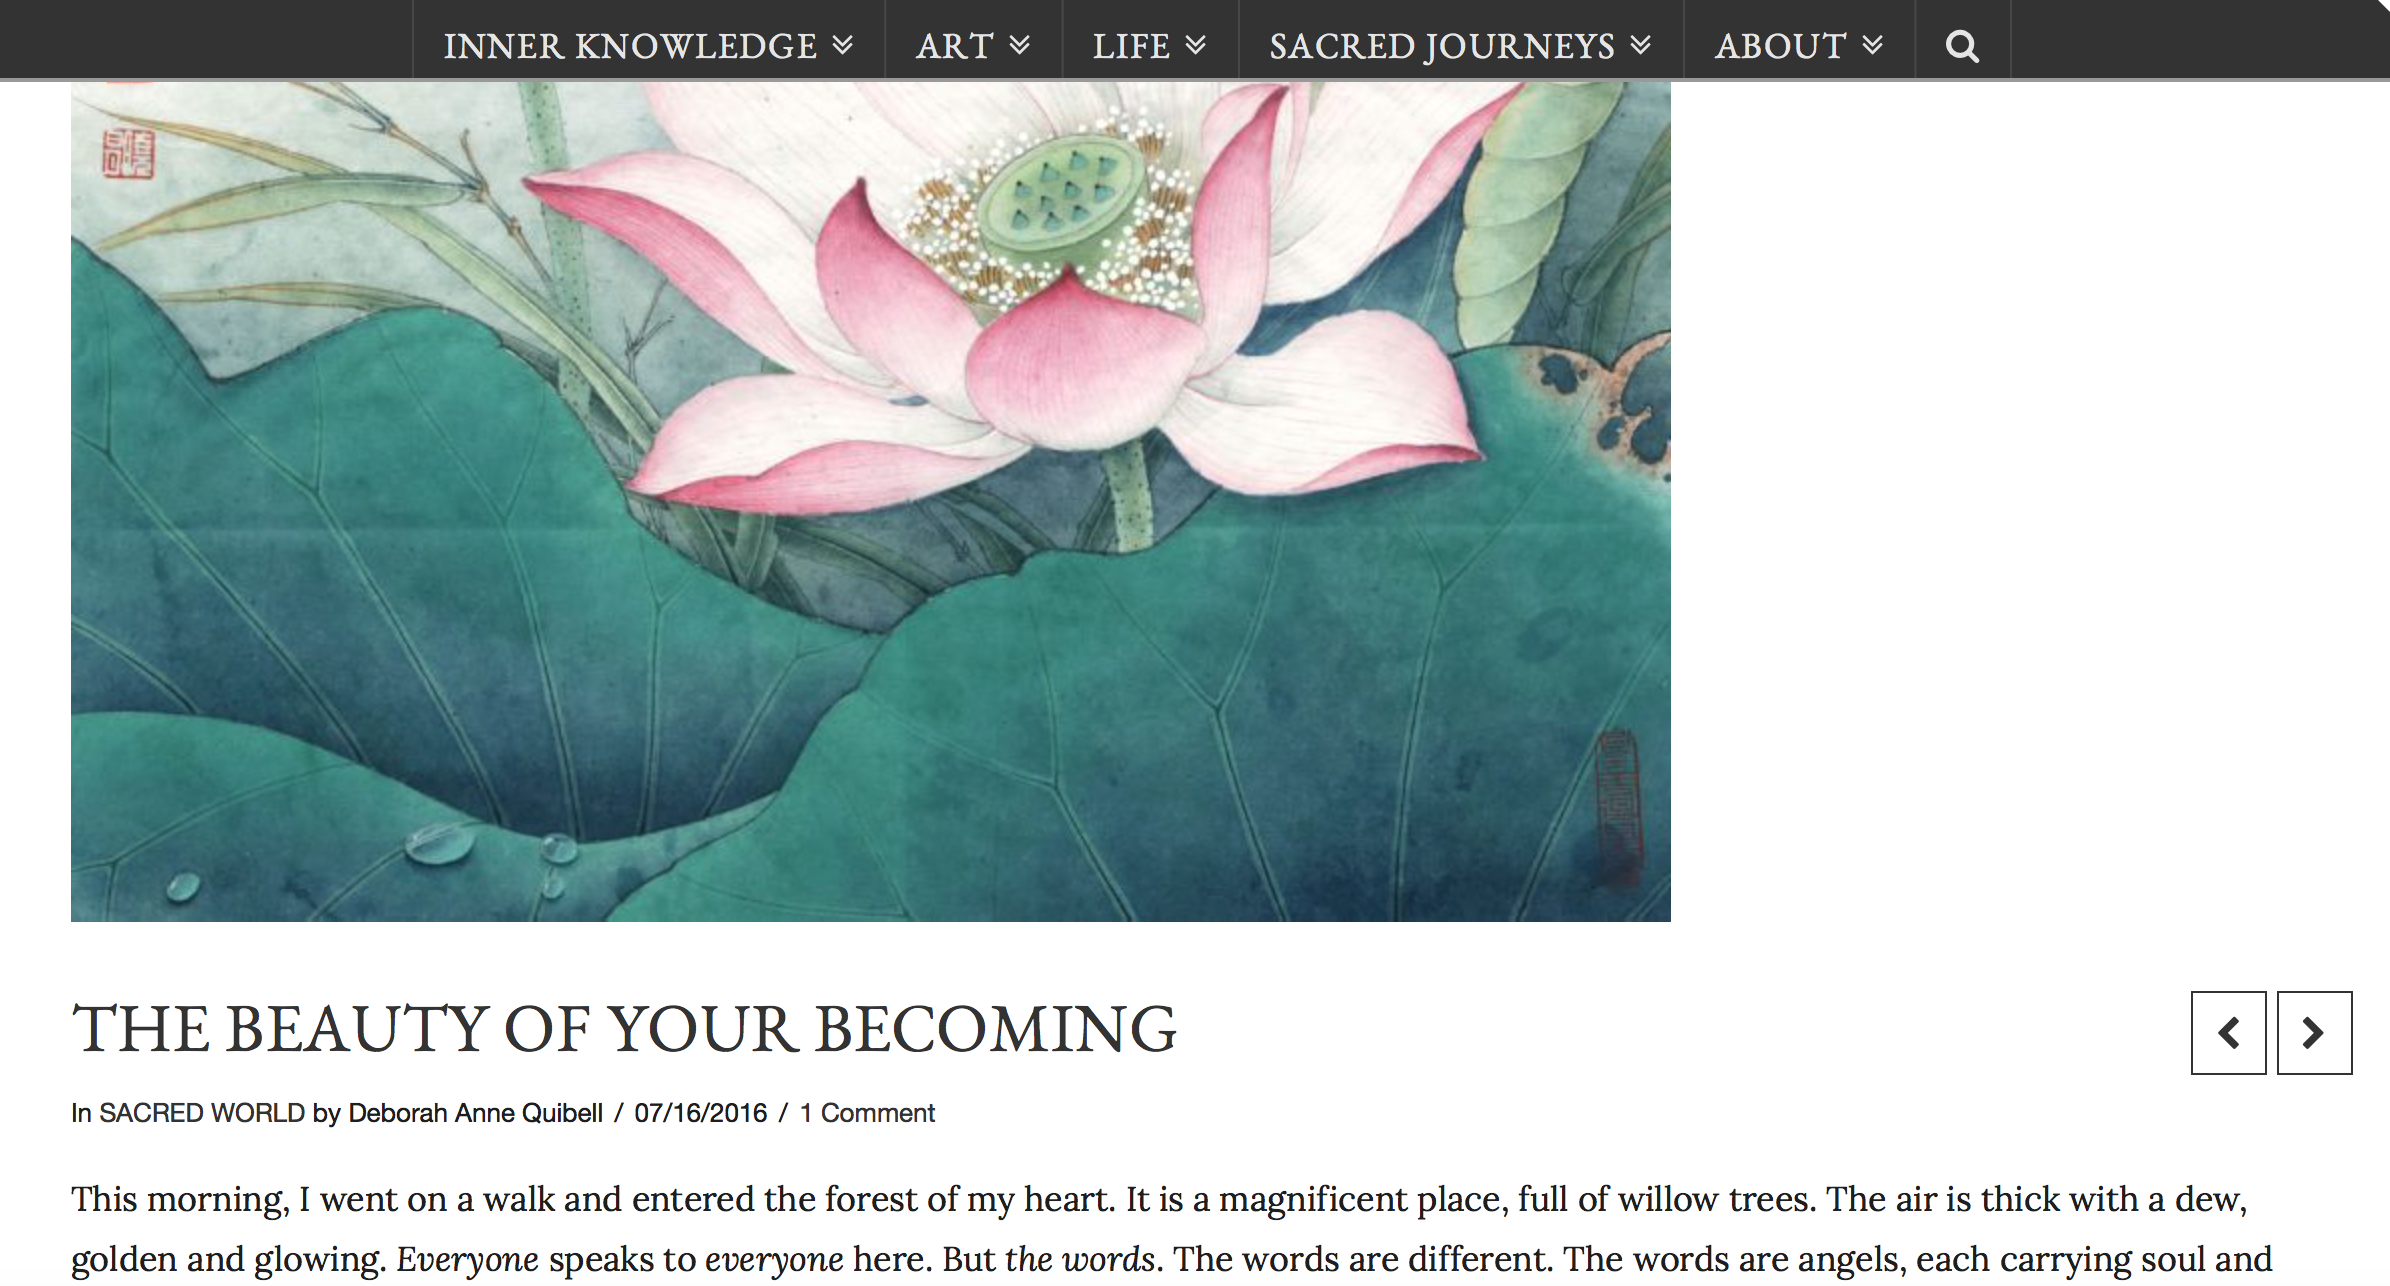 The Beauty of Your Becoming